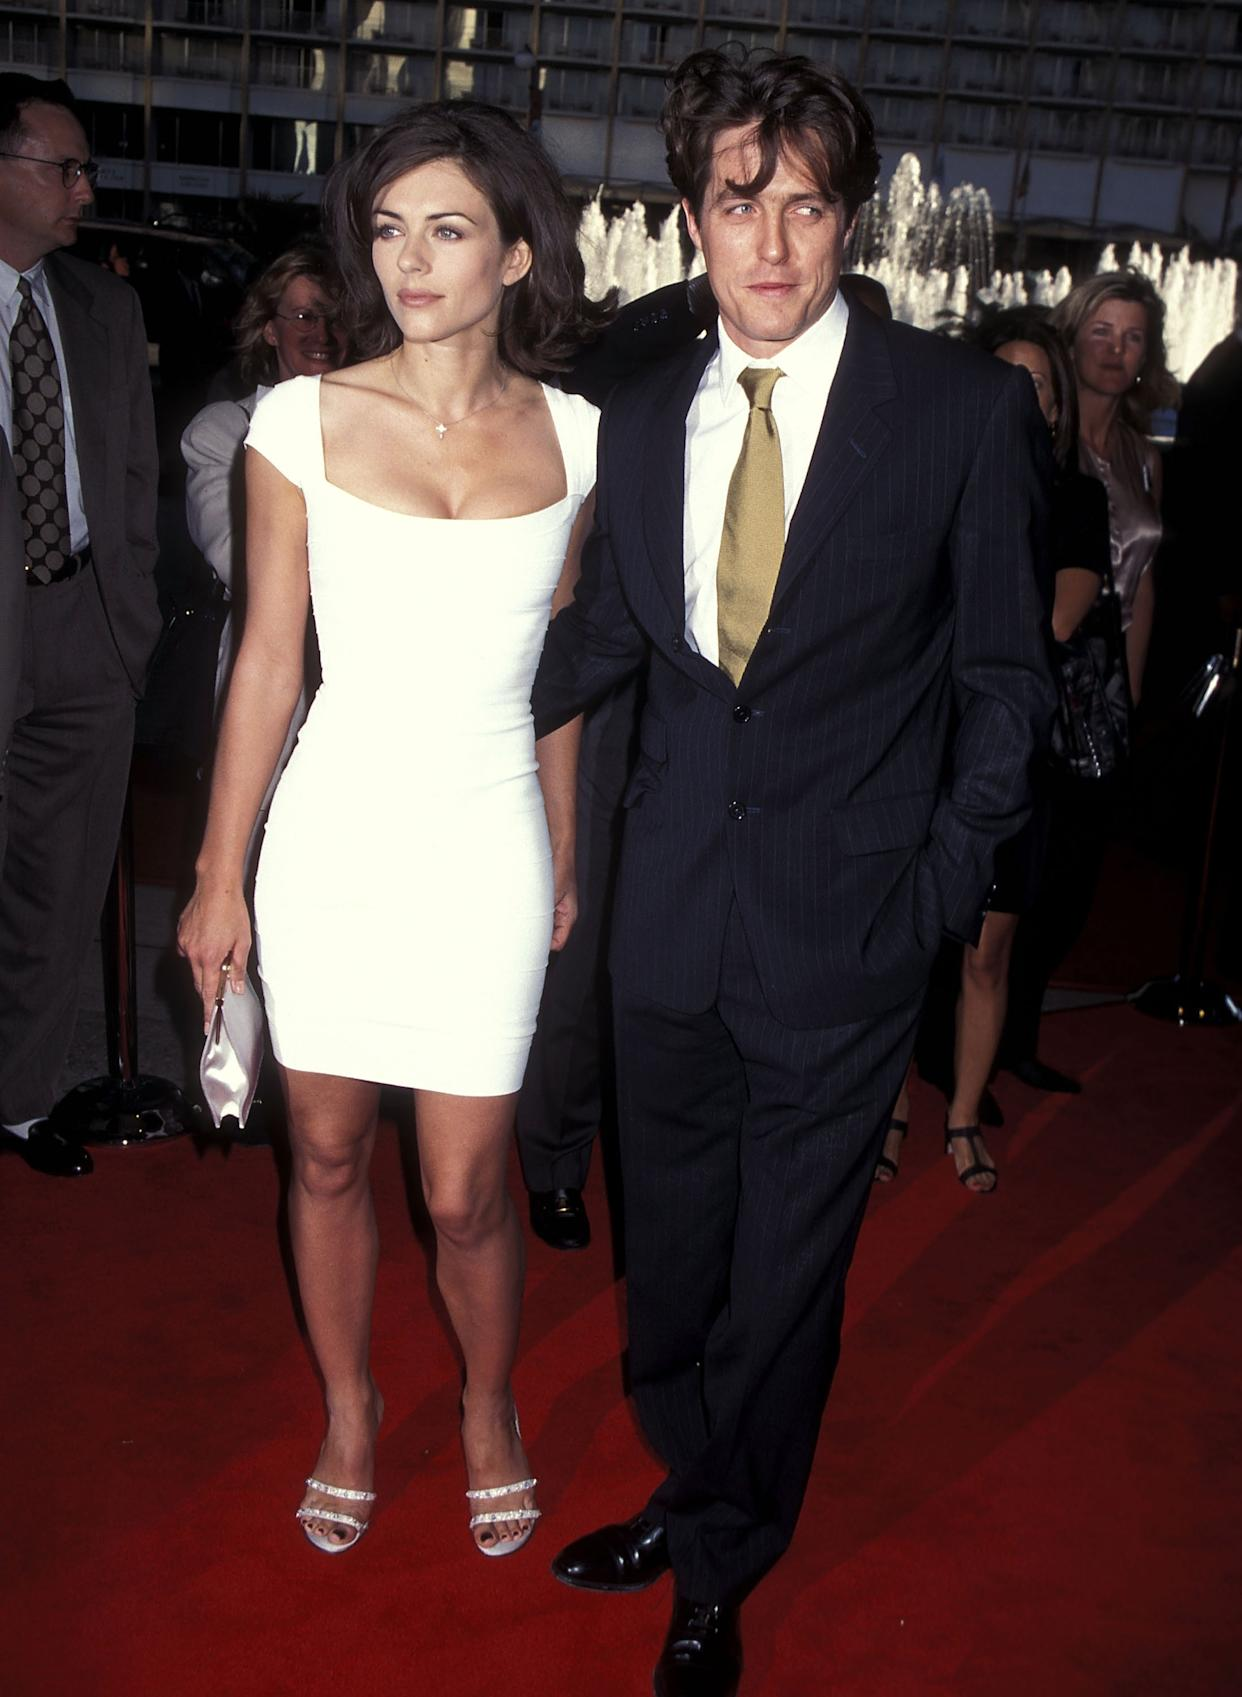 """Elizabeth Hurley and actor Hugh Grant attend the """"Nine Months"""" Century City Premiere on July 11, 1995 at Cineplex Odeon Century Plaza Cinemas in Century City, California. (Photo by Ron Galella, Ltd./Ron Galella Collection via Getty Images)"""